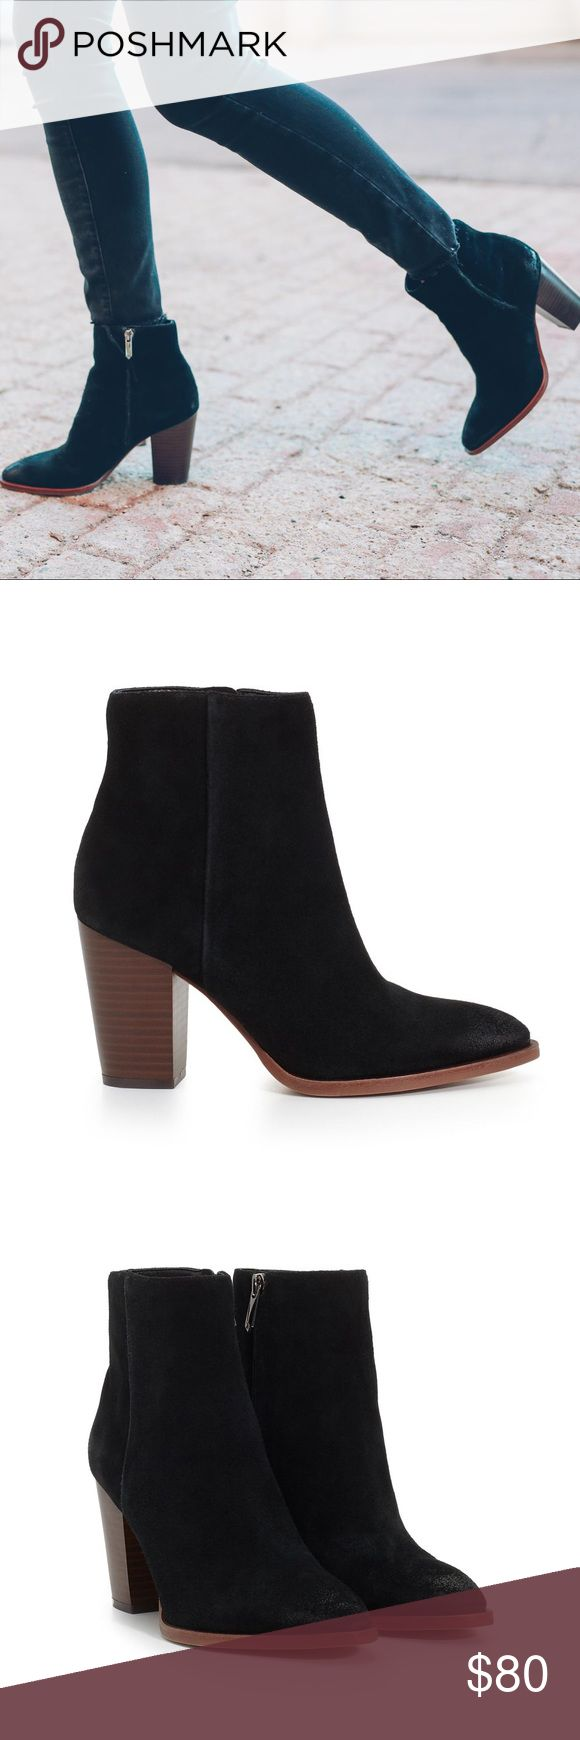 New Sam Edelman Black Suede Blake Booties So cute and perfectly on trend! Blogger favorite, as seen on Emily Gemma. Black suede. Interior zip. Stacked wooden heel. Size 7.5. No trades!! 042517150nrt Sam Edelman Shoes Ankle Boots & Booties